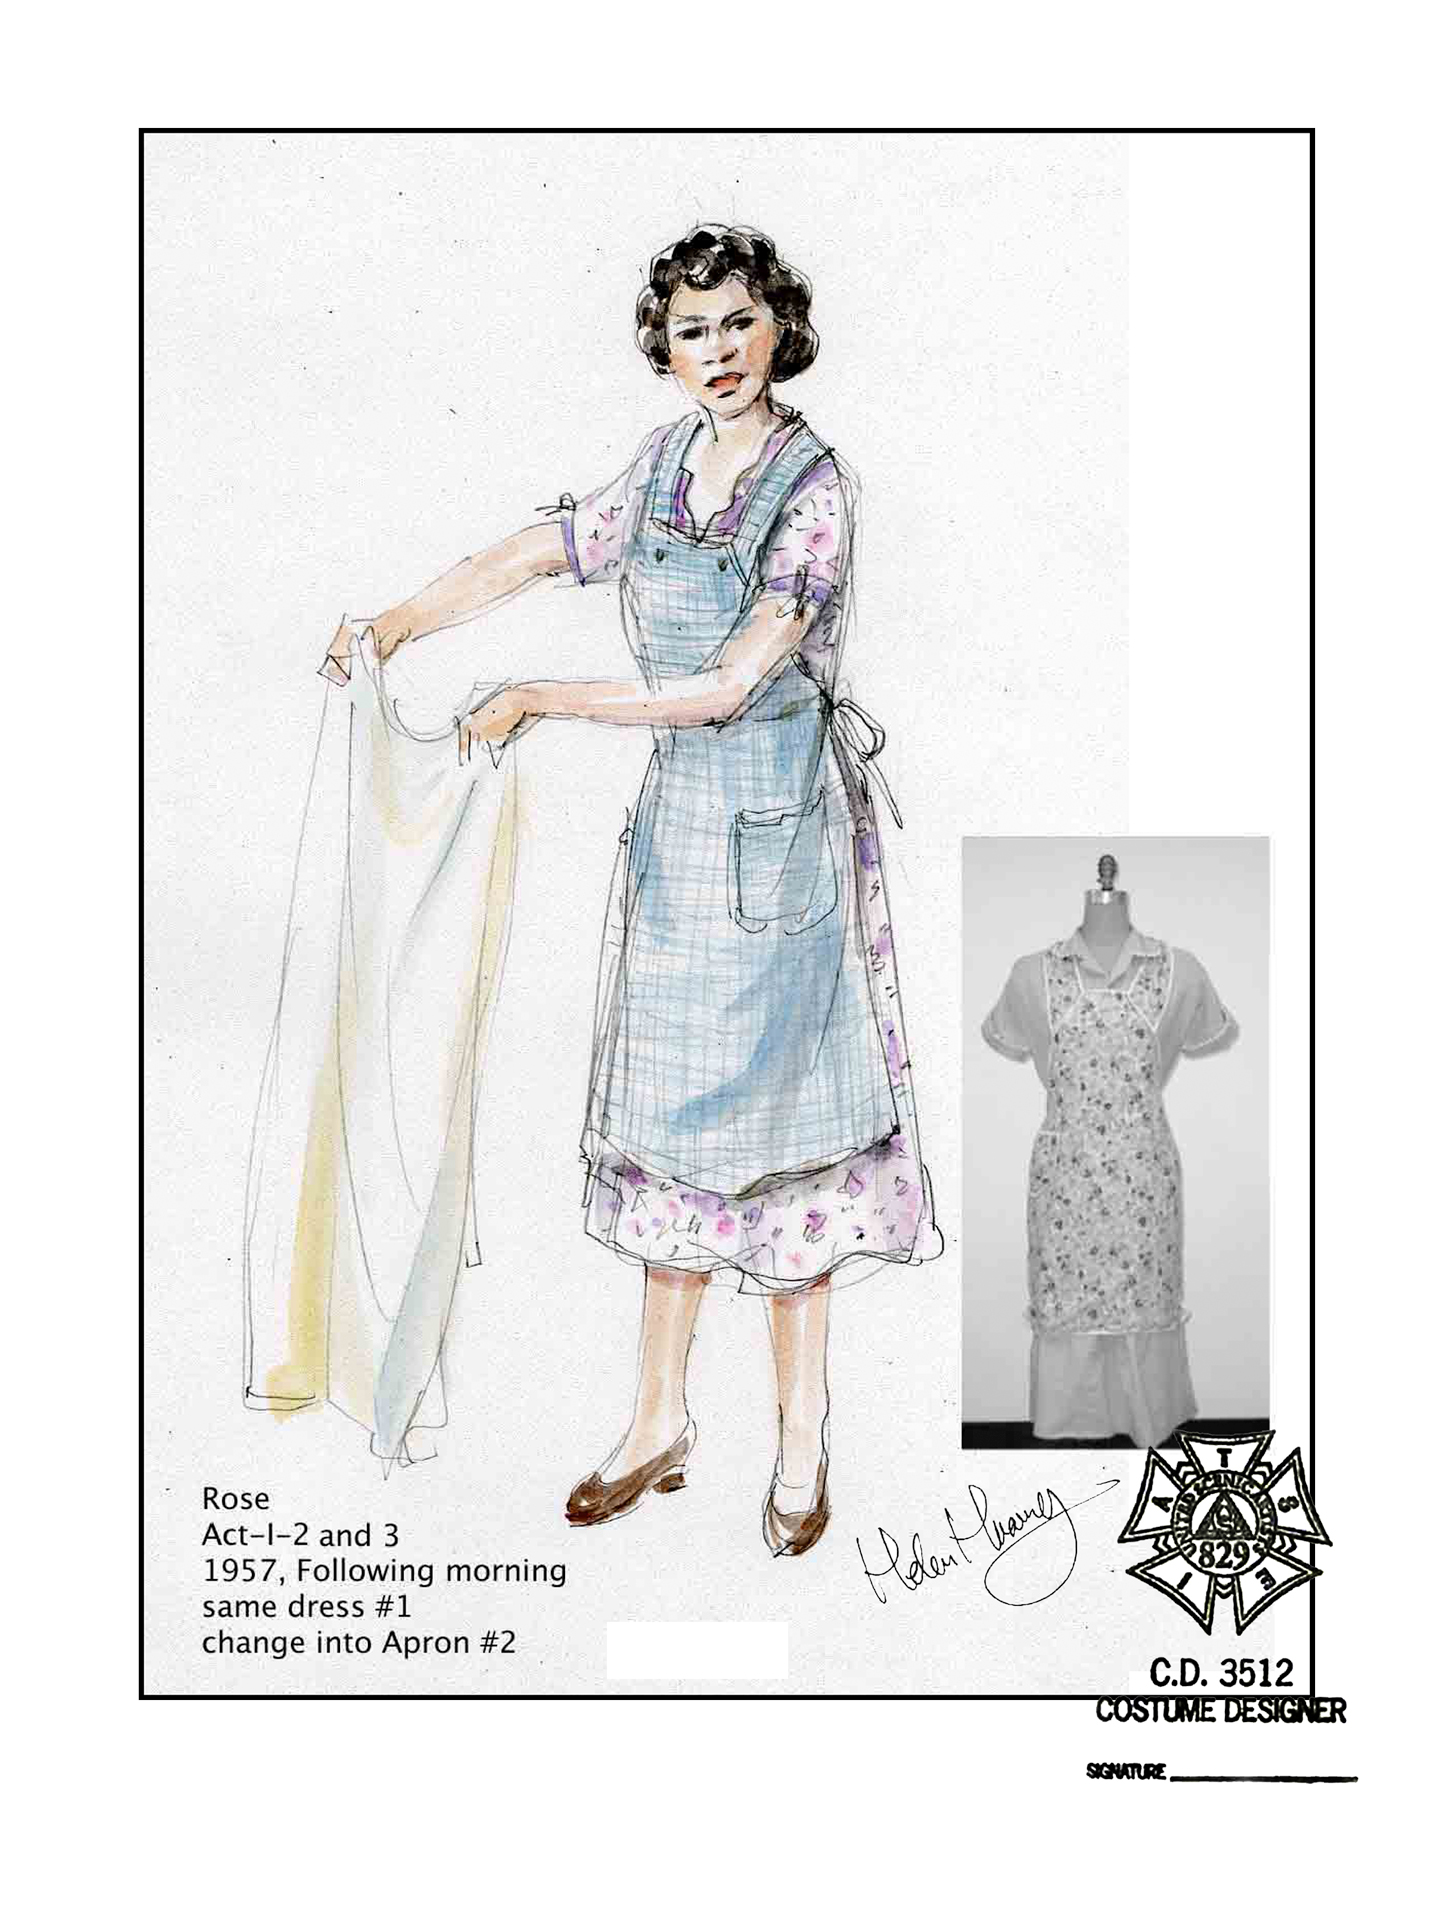 "Costume design sketch by Helen Huang of a costume for August Wilson's character Rose in the play ""Fences"" at Ford's Theatre. We see her wearing a simple blue apron over a short-sleeved, knee-length white dress with a small floral pattern."